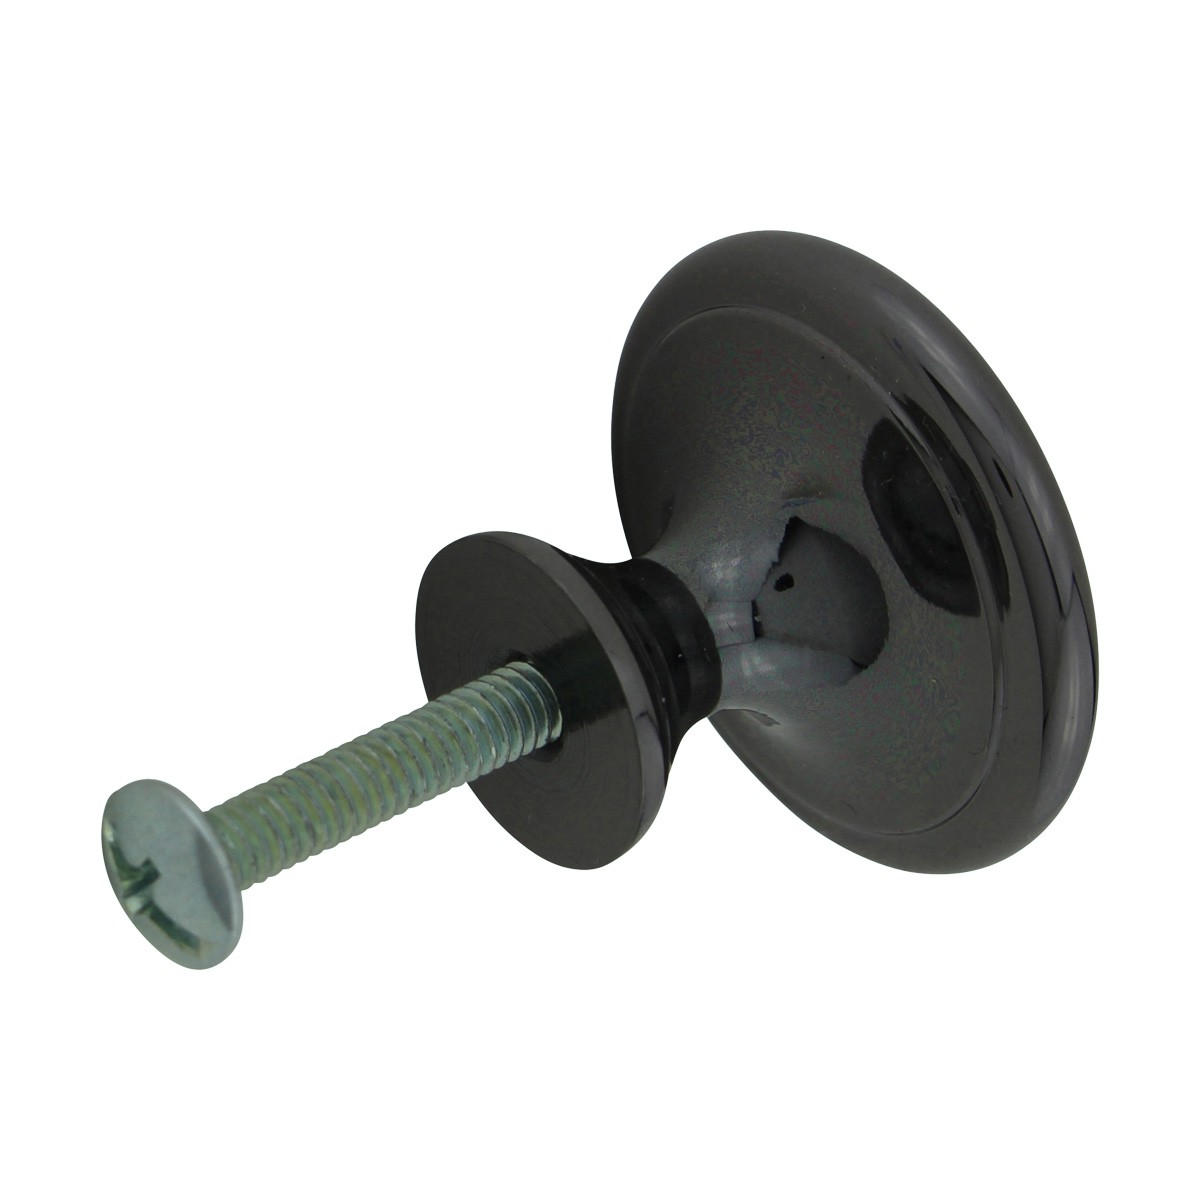 Cabinet Knob Nickel Black Solid Brass 1 14 Dia Modern Kitchen Cabinet Hardware Kitchen Cabinet Knobs And Pulls Unique Black Nickel Cabinet Knob